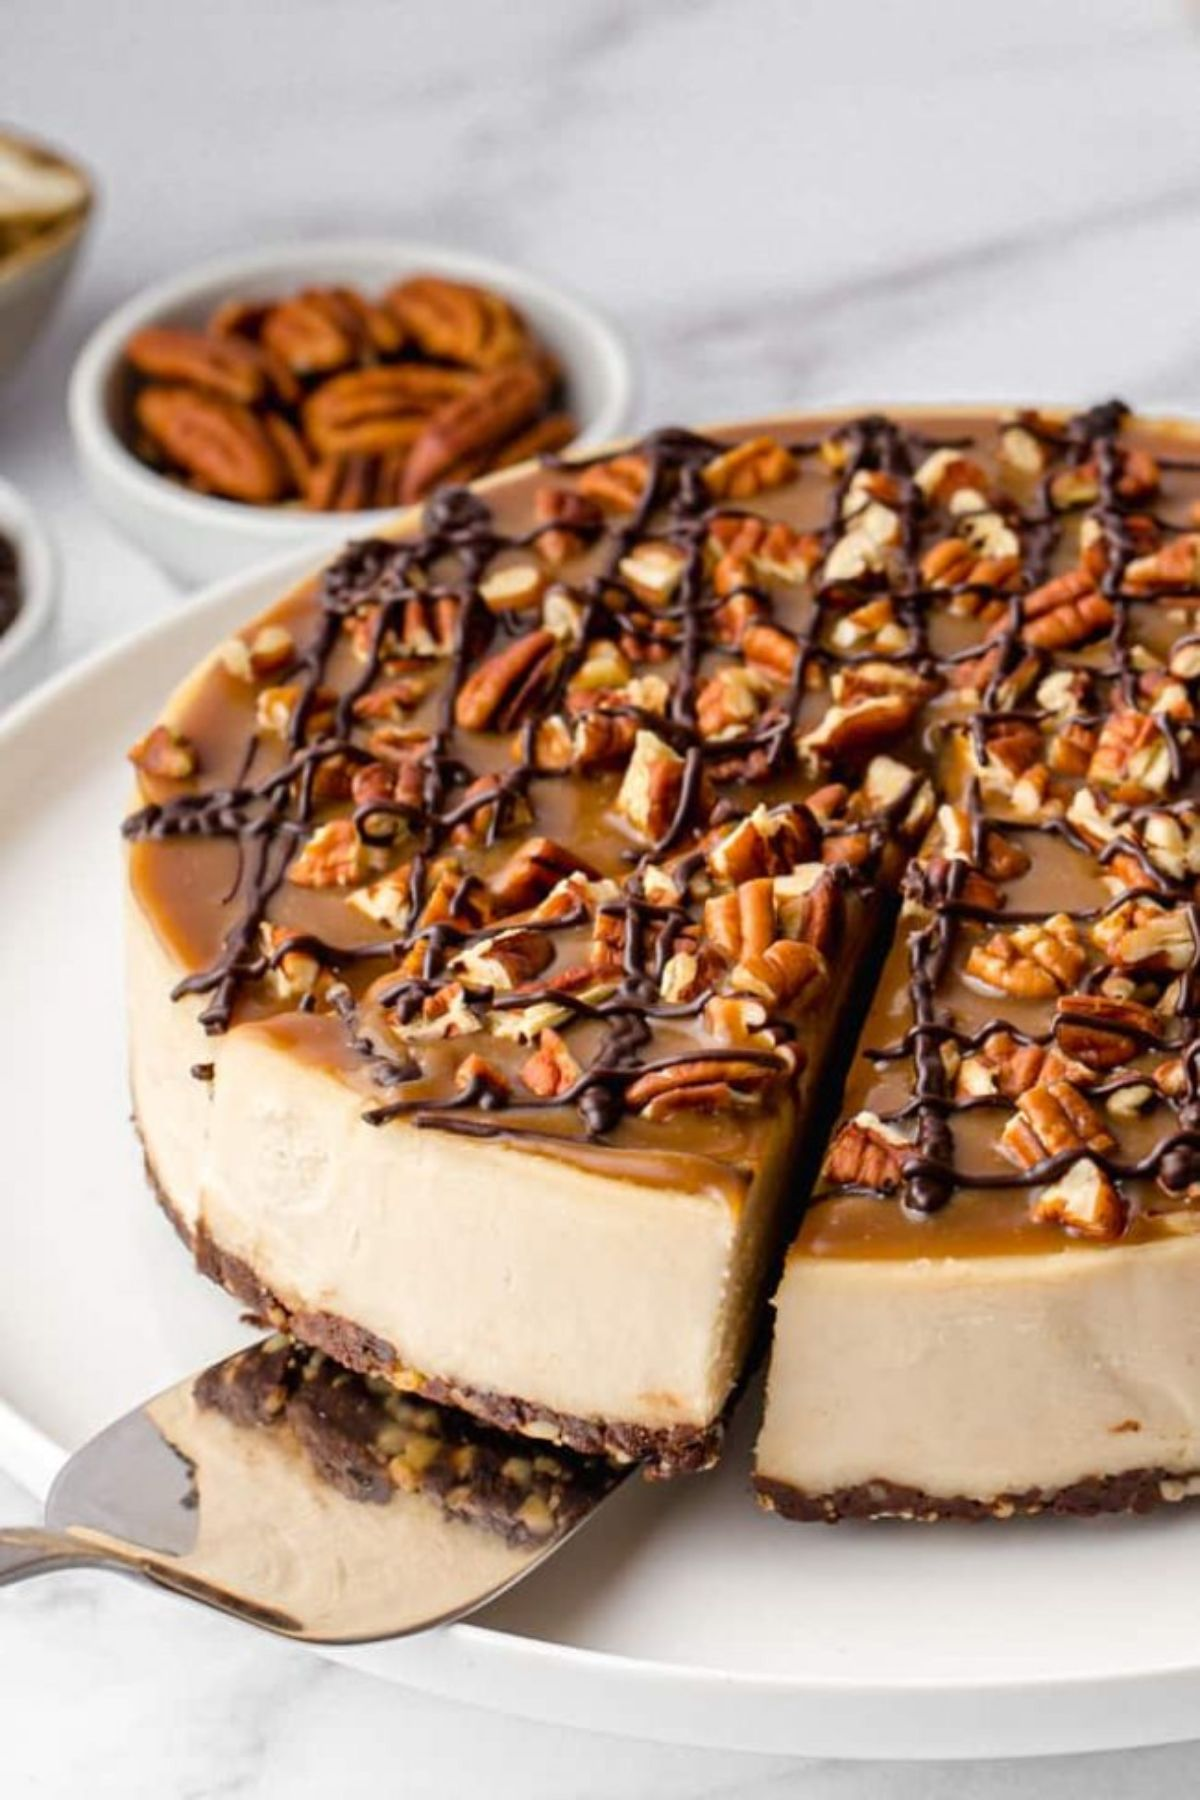 A plate of caramel coloured cheesecake with one segment cut out and being liften out by a cake slice. A bow of ppecans is in the back